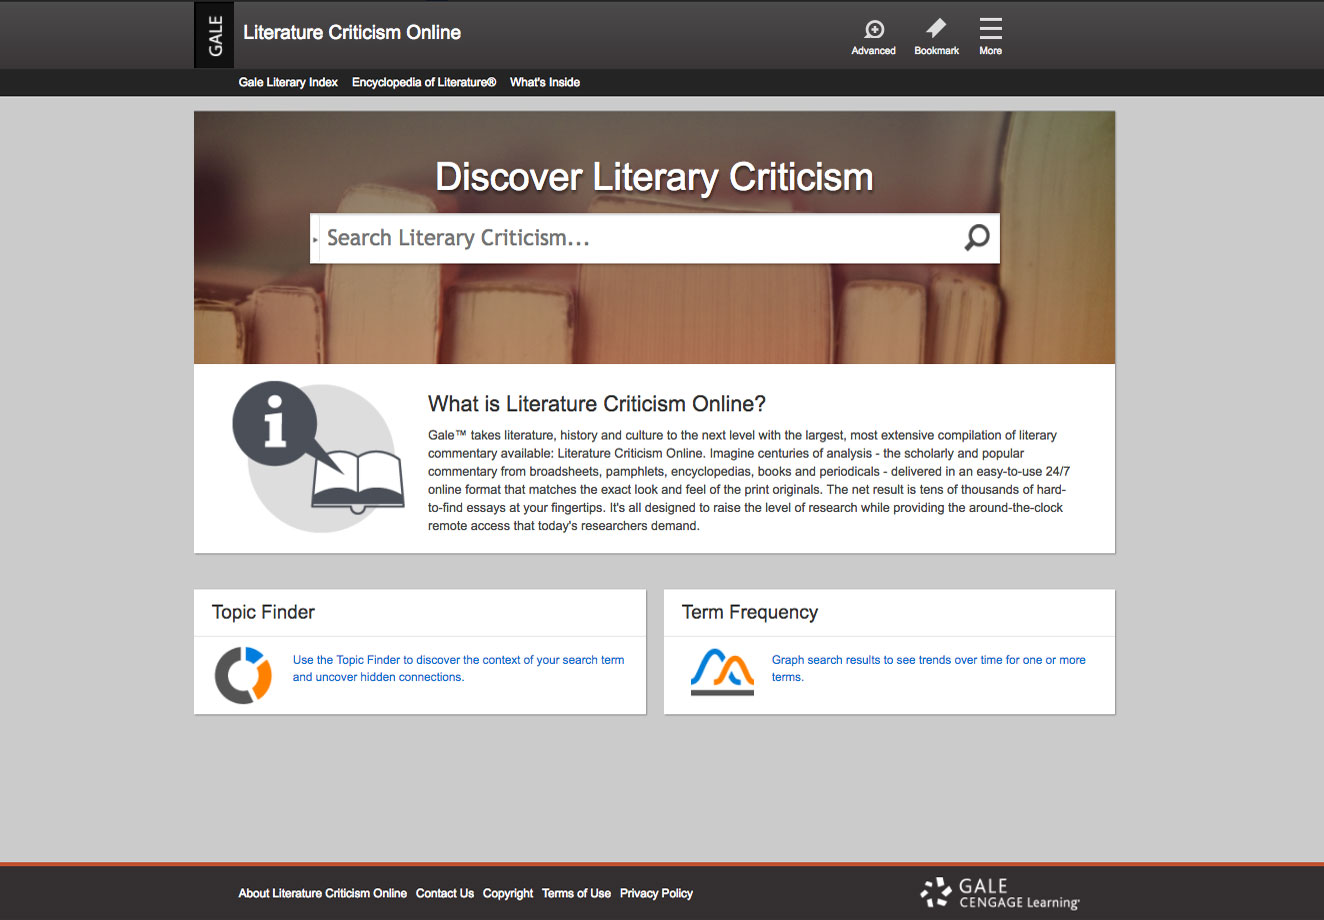 The Literature Criticism Online home page screenshot.